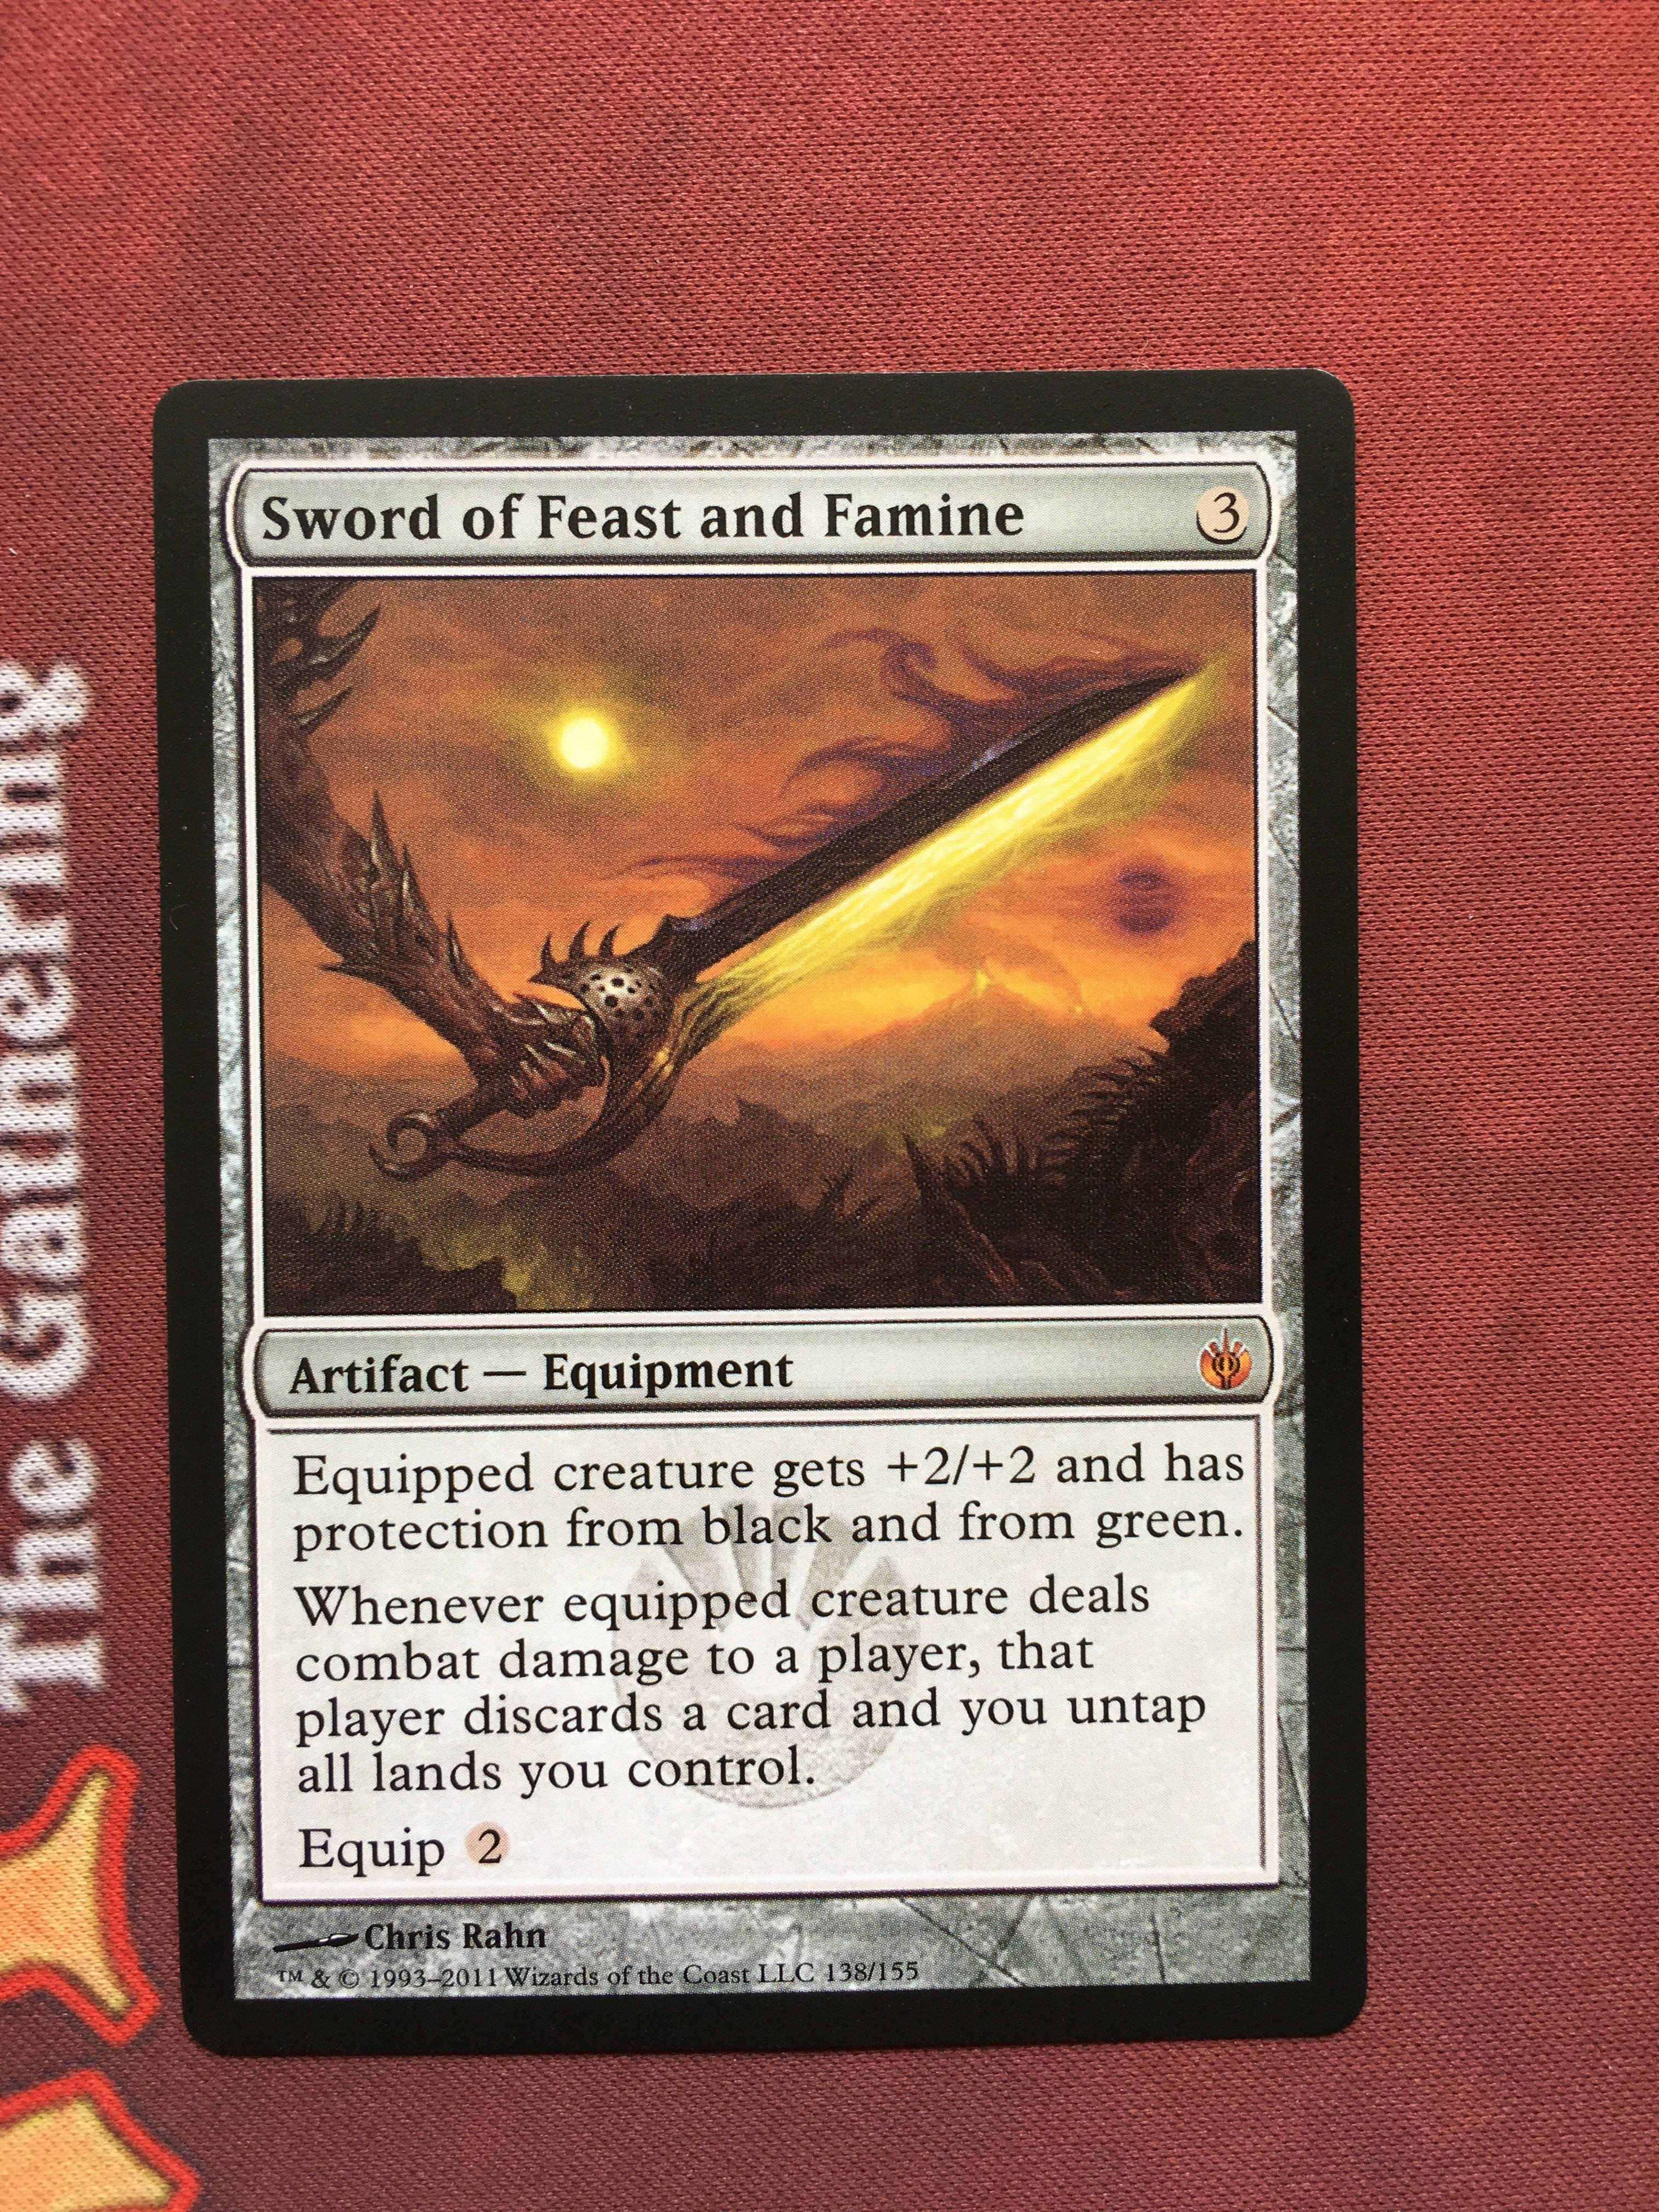 Sword Of Feast And Famine Mirrodin Besieged Magician ProxyKing 8.0 VIP The Proxy Cards To Gathering Every Single Mg Card.